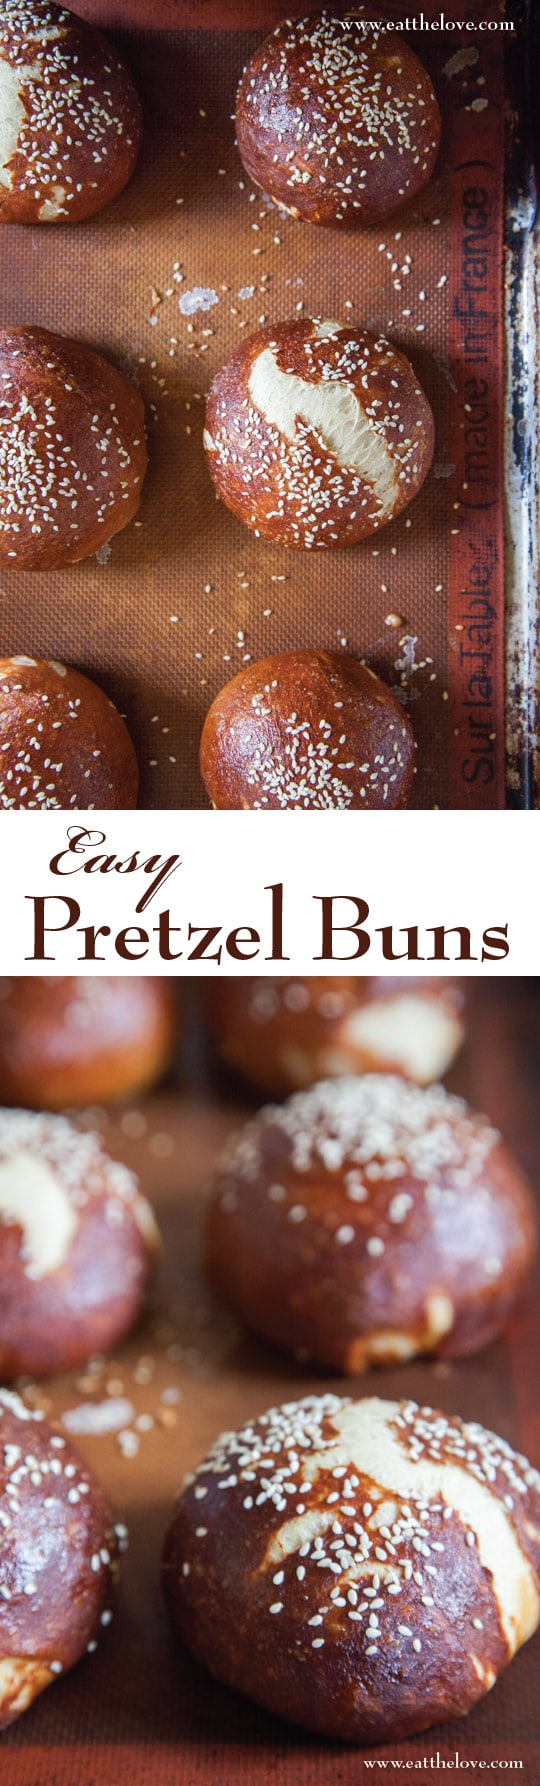 Easy to make Pretzel Buns. Photo and recipe by Irvin Lin of Eat the Love.